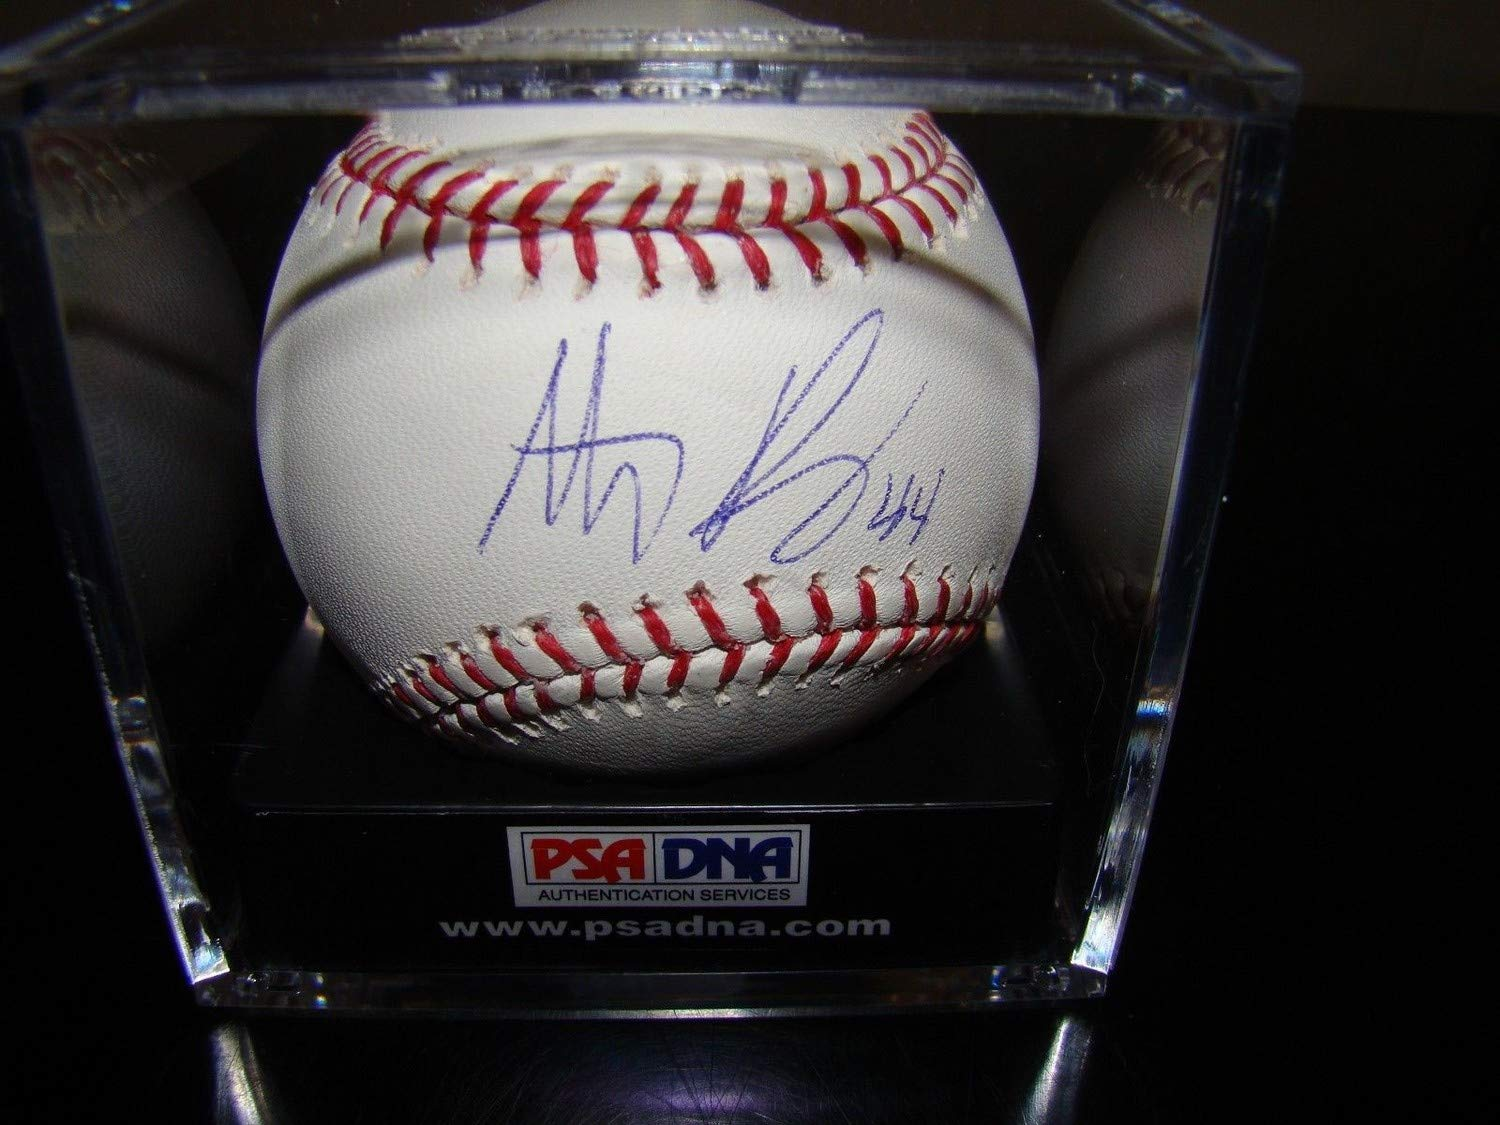 Anthony Rizzo Autographed Signed Baseball RoMLB PSA/DNA Cubs Ticket & Cube